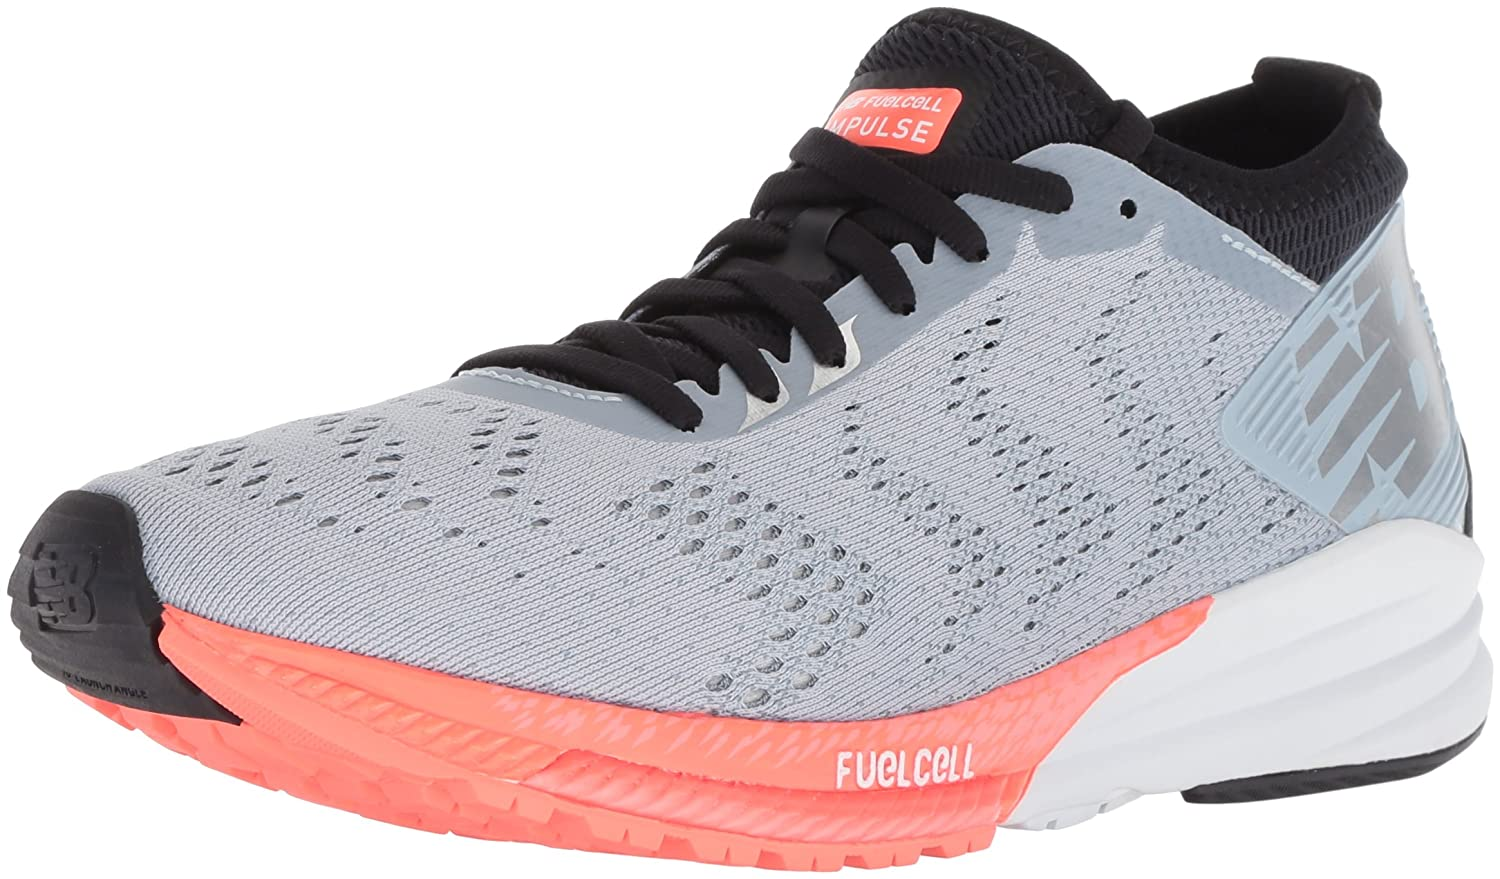 New Balance Women's Impulse B075R7D6W7 V1 FuelCell Running Shoe B075R7D6W7 Impulse 9 D US|Light Grey 12db4b